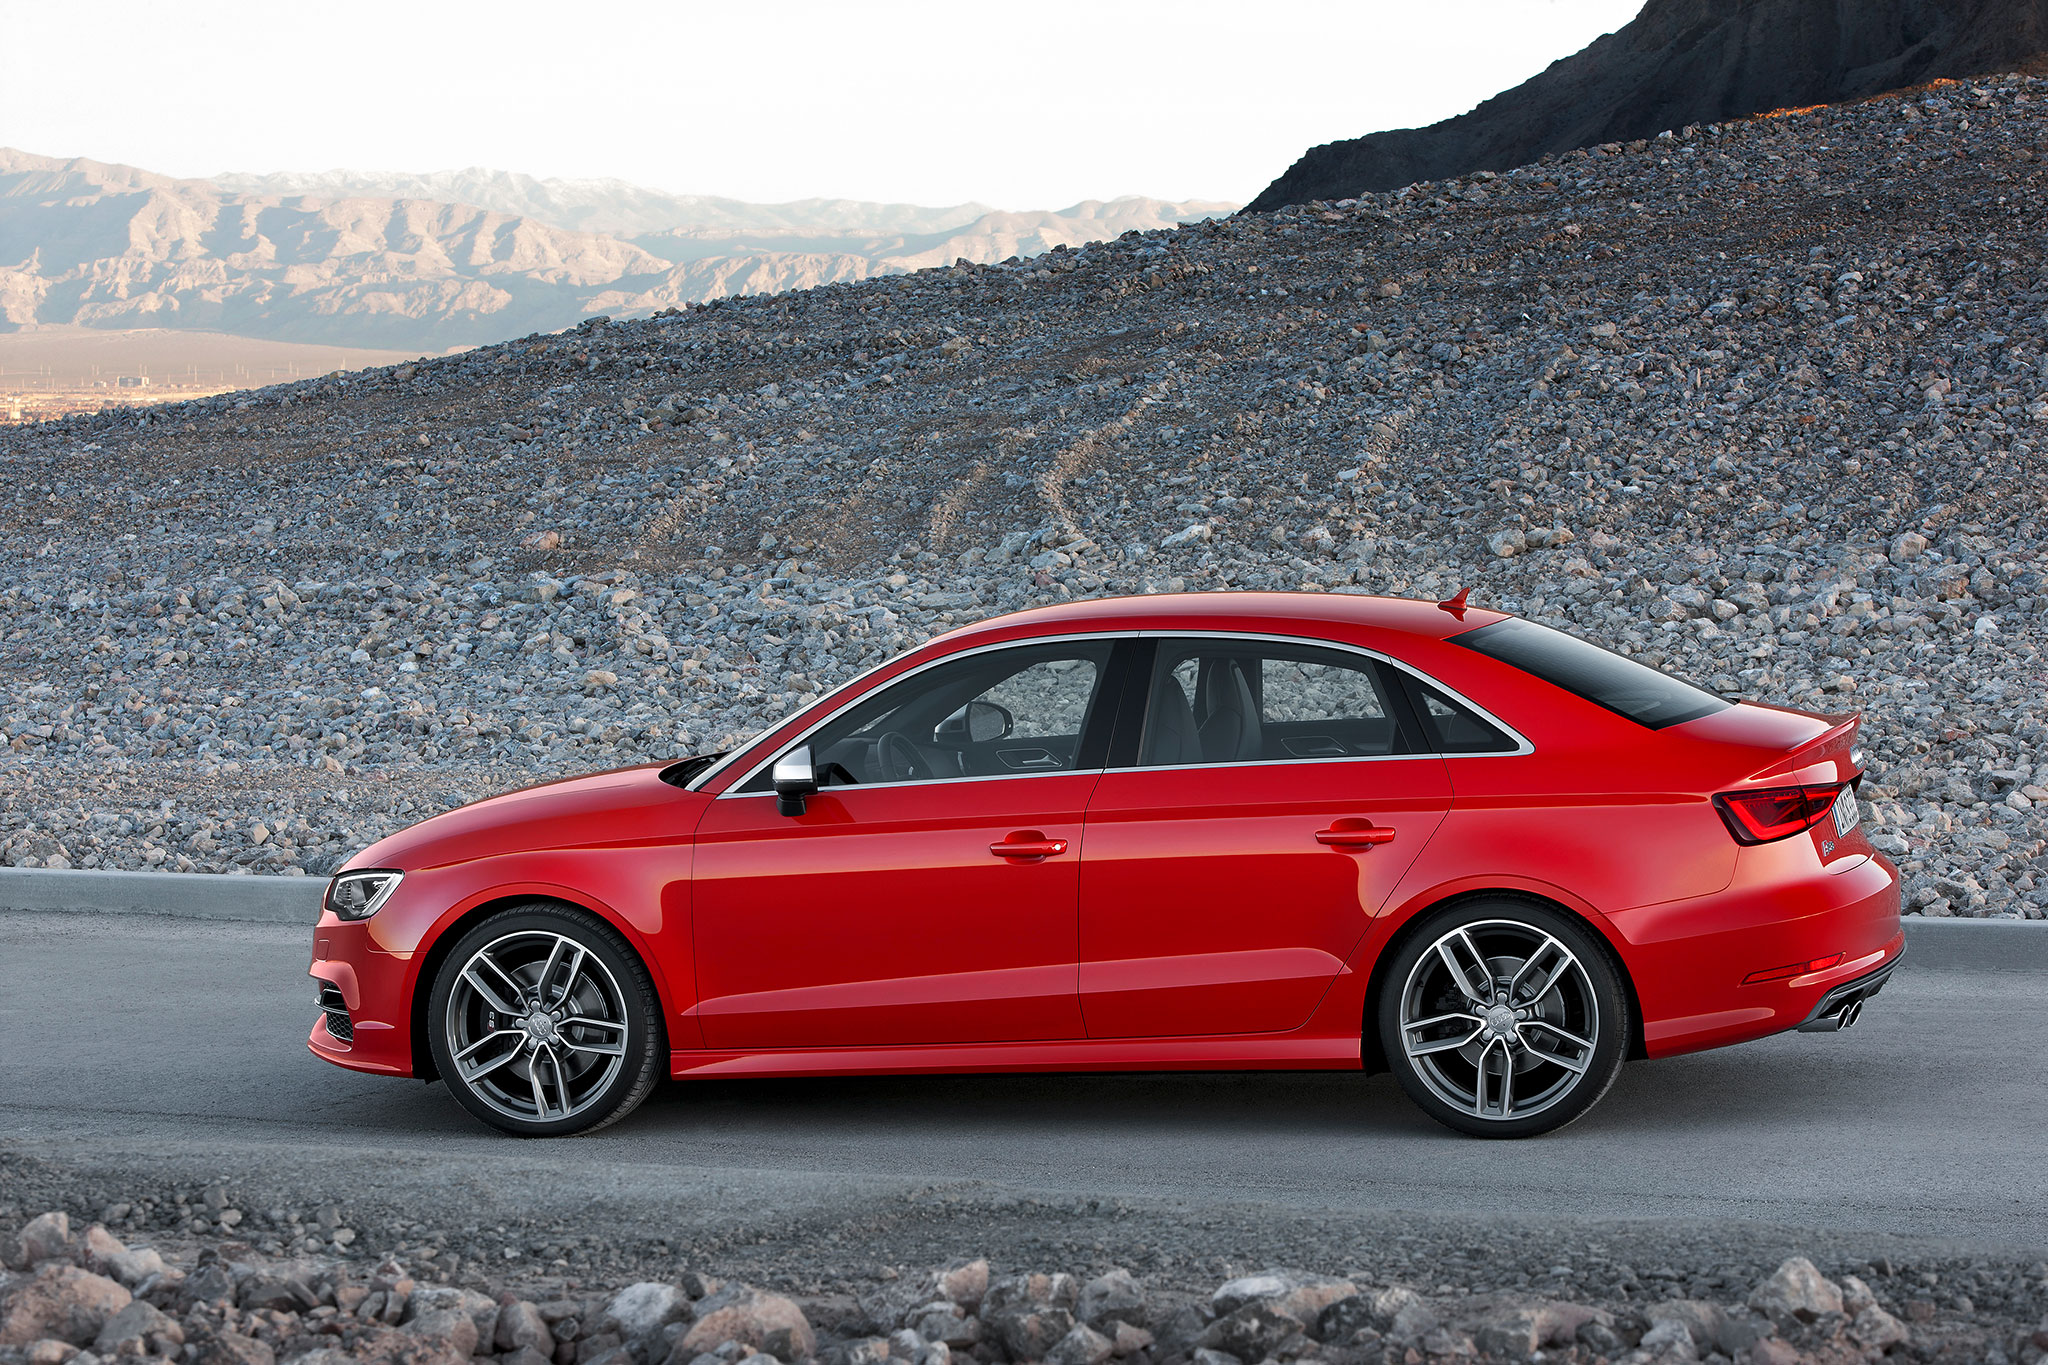 2015 audi a3 pricing and options list detailed automobile magazine. Black Bedroom Furniture Sets. Home Design Ideas